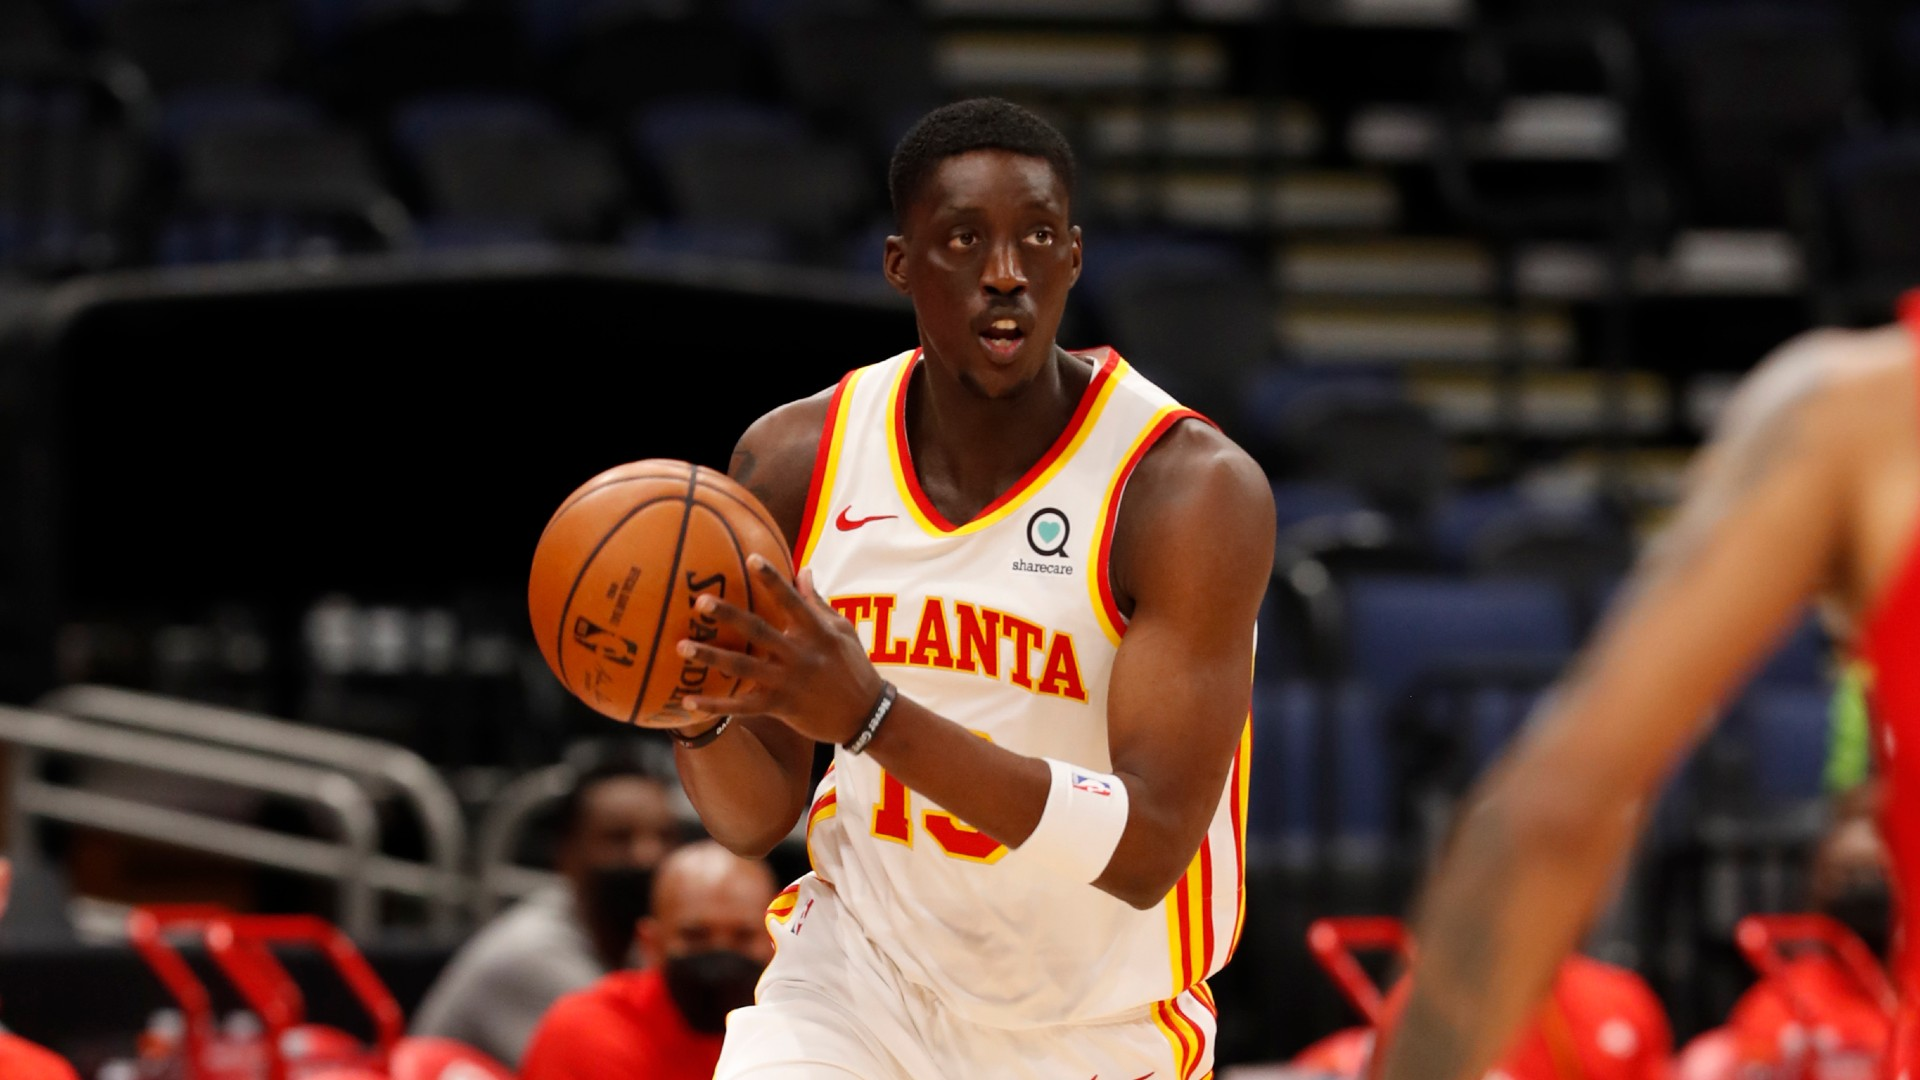 Hawks' Tony Snell to miss at least 2 games with ankle injury